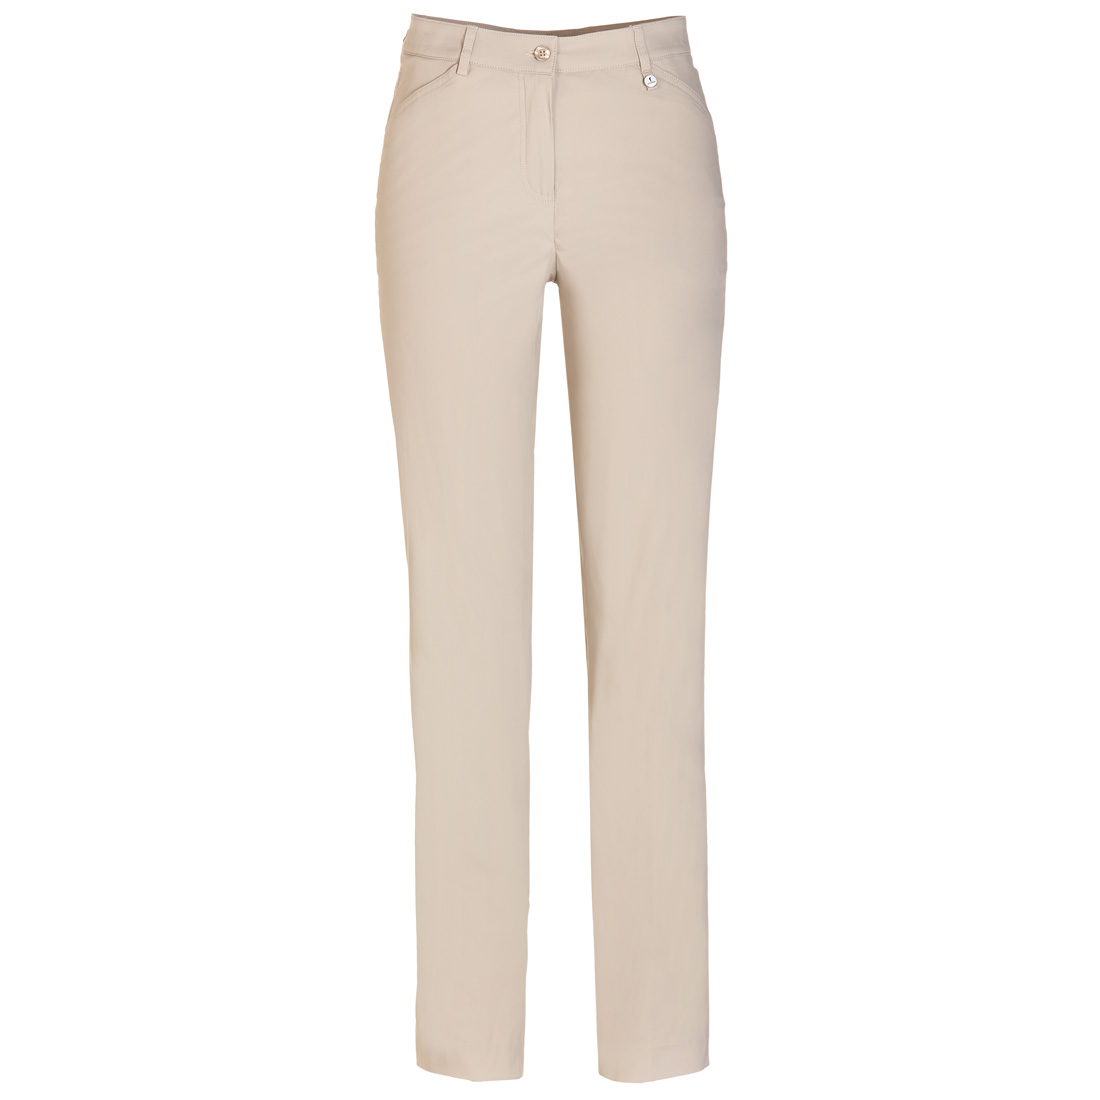 Klassische Multistretch Hose Light taupe